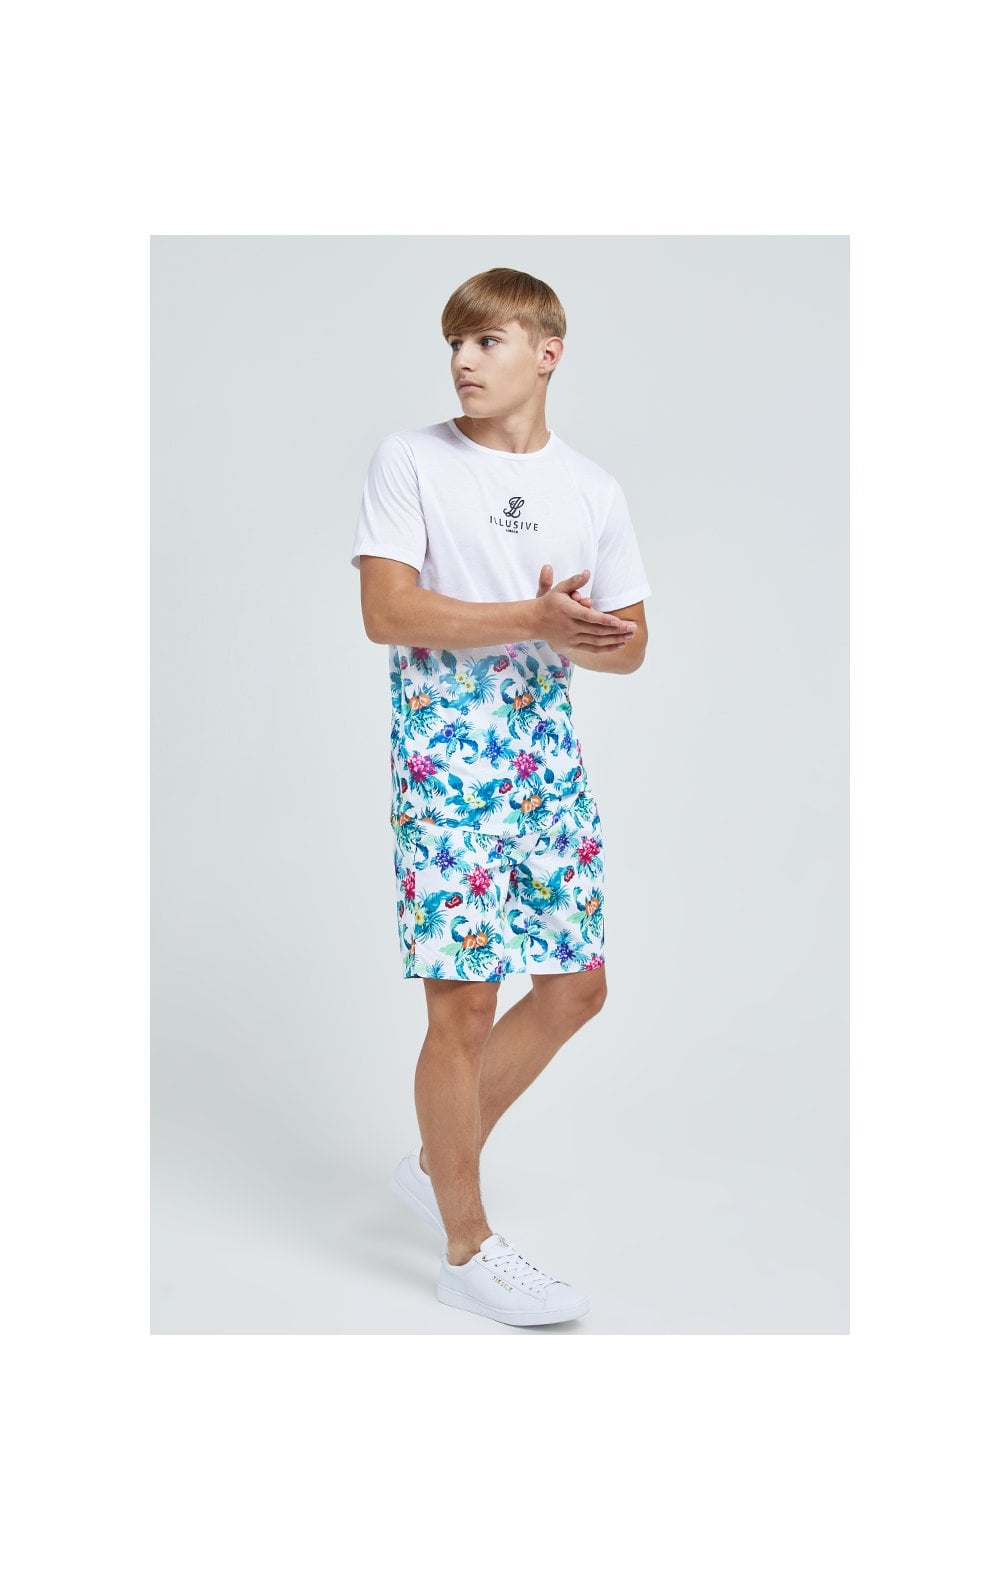 Load image into Gallery viewer, Illusive London Swim Shorts - White & Floral (6)